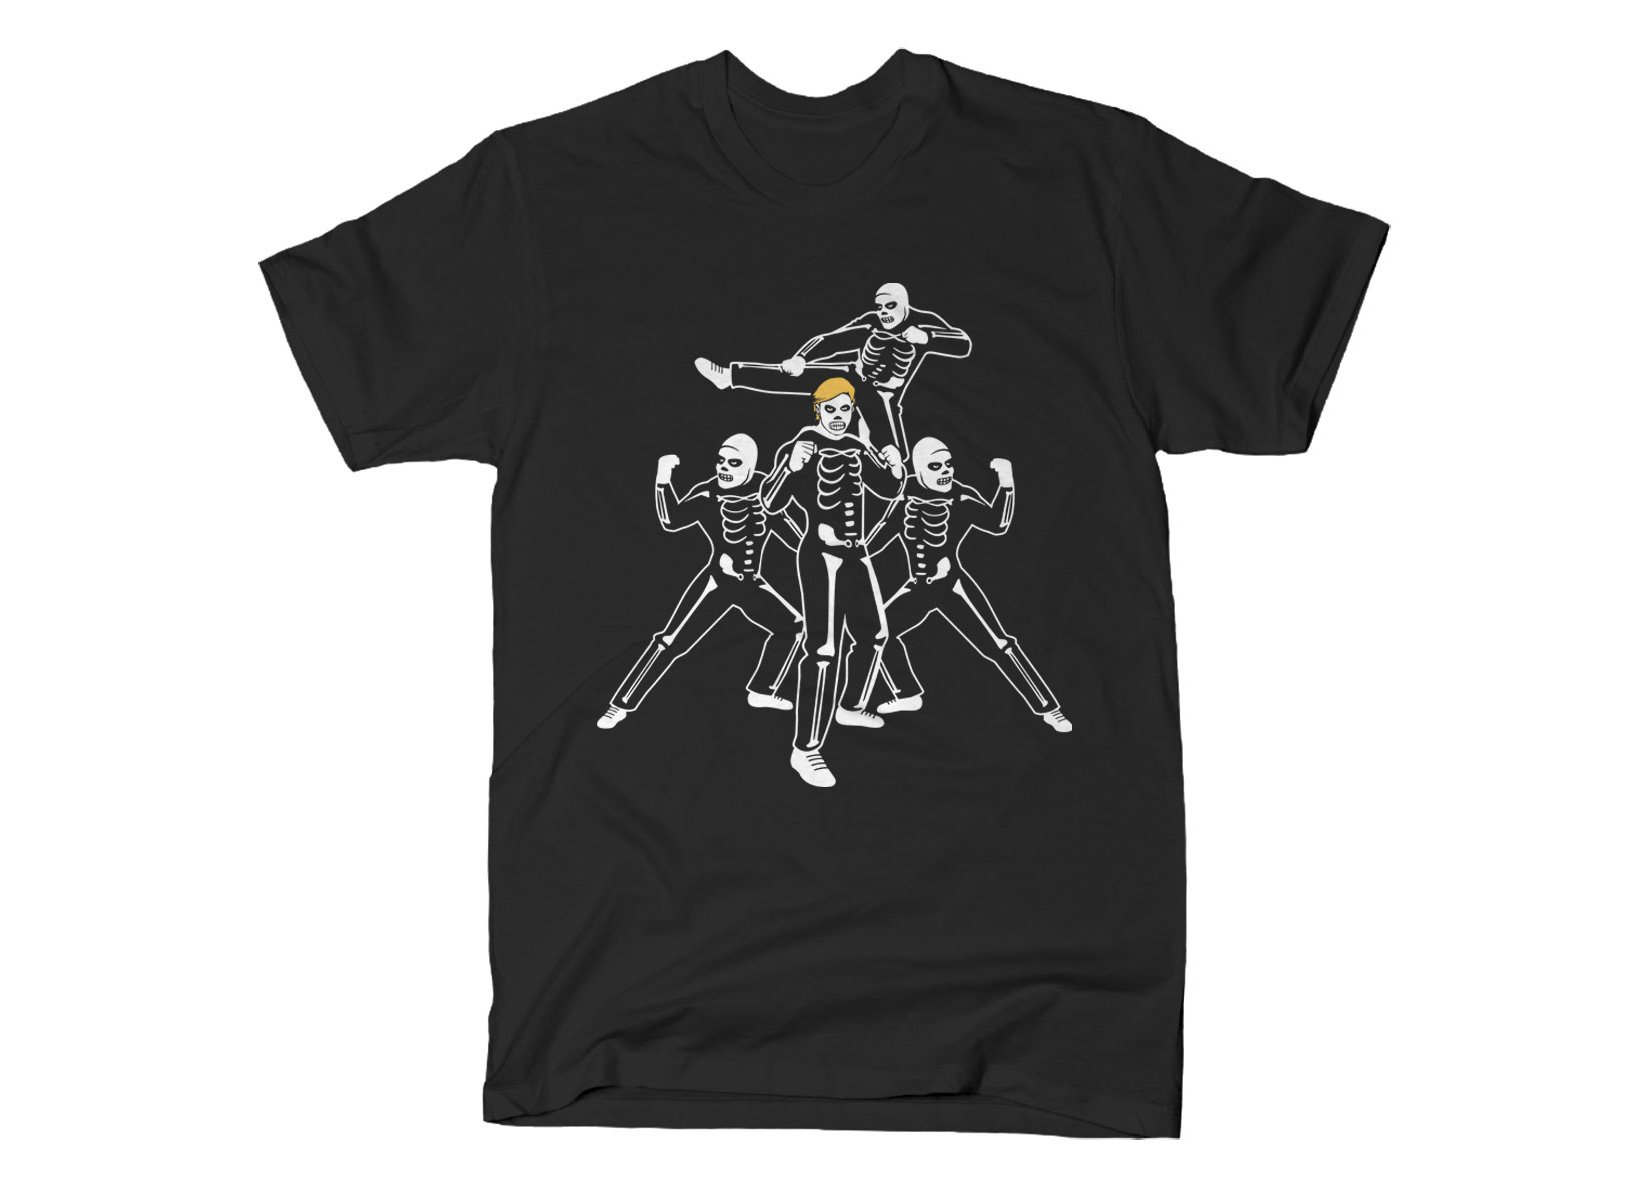 Cobra Kai on Mens T-Shirt